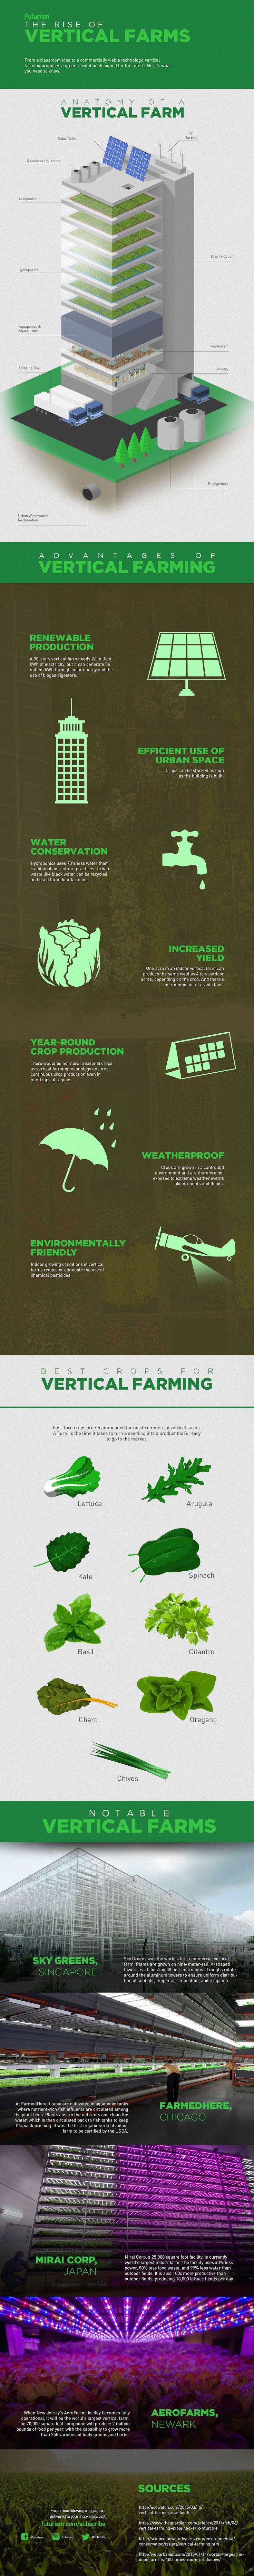 Check out Vertical Farming For Compact Spaces | Types of Farming at http://pioneersettler.com/vertical-farming/